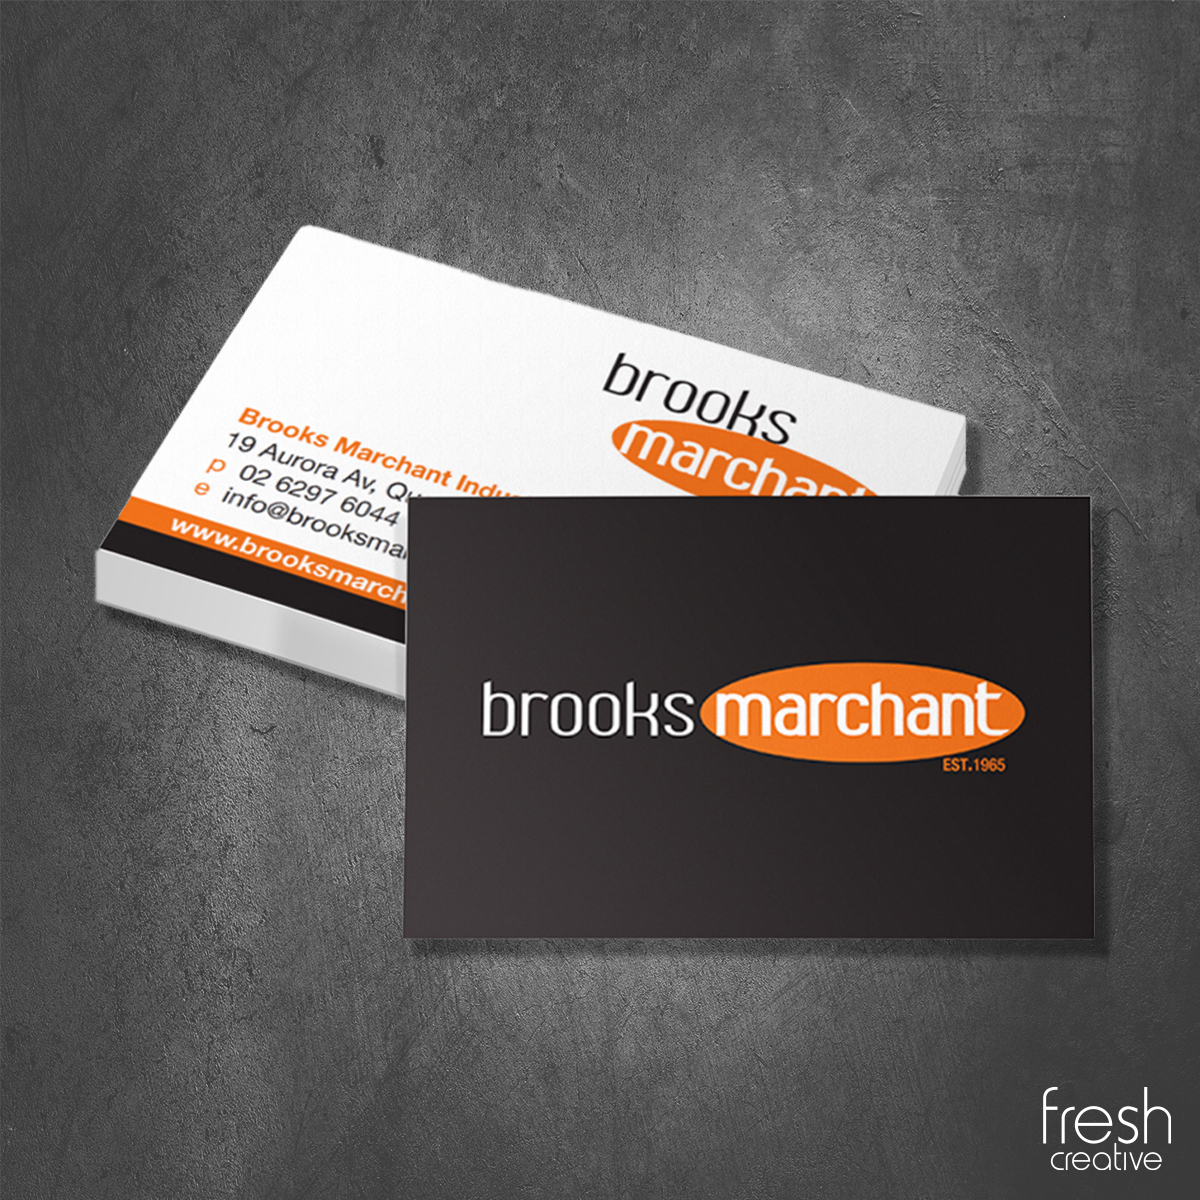 Brooks Marchant Business Cards Canberra